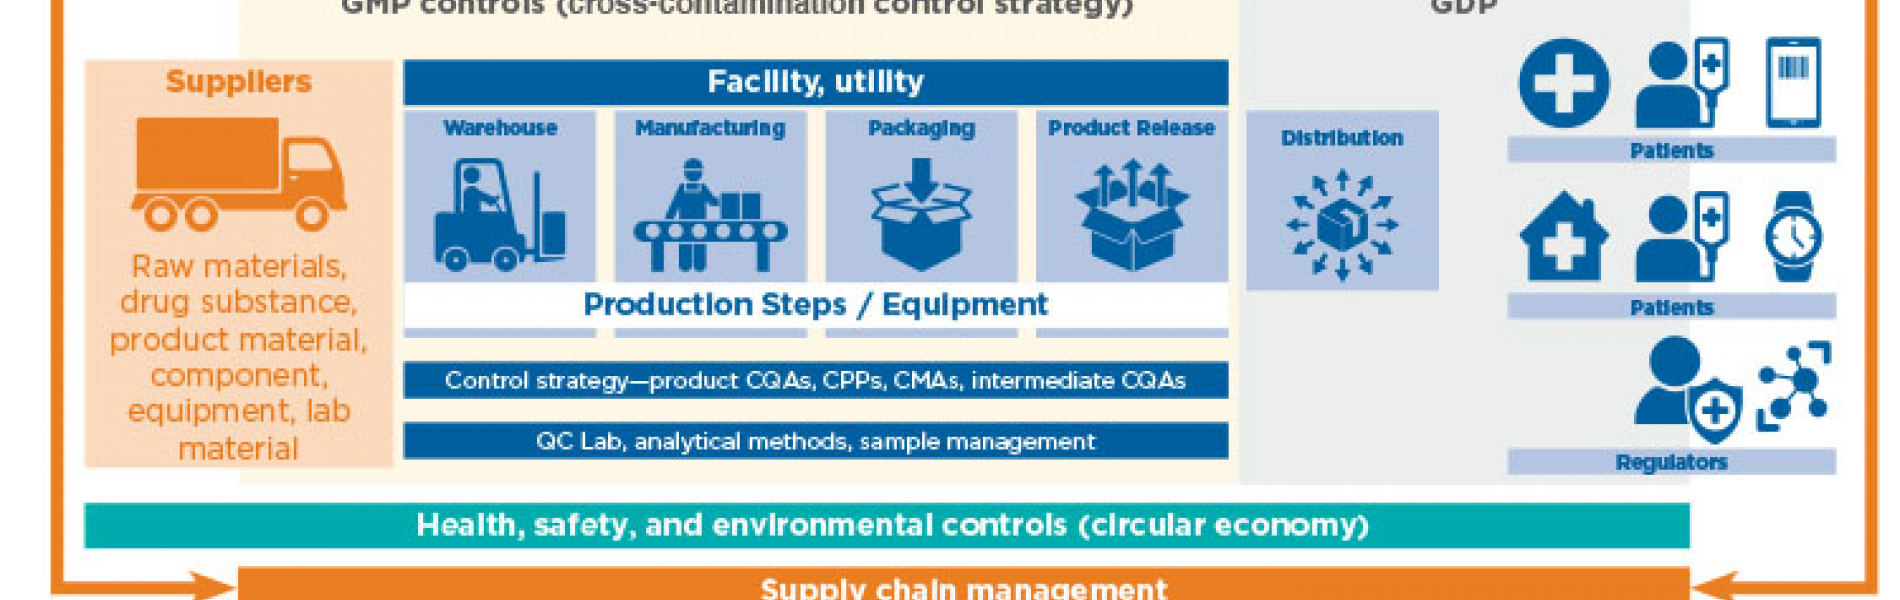 The holistic supply chain